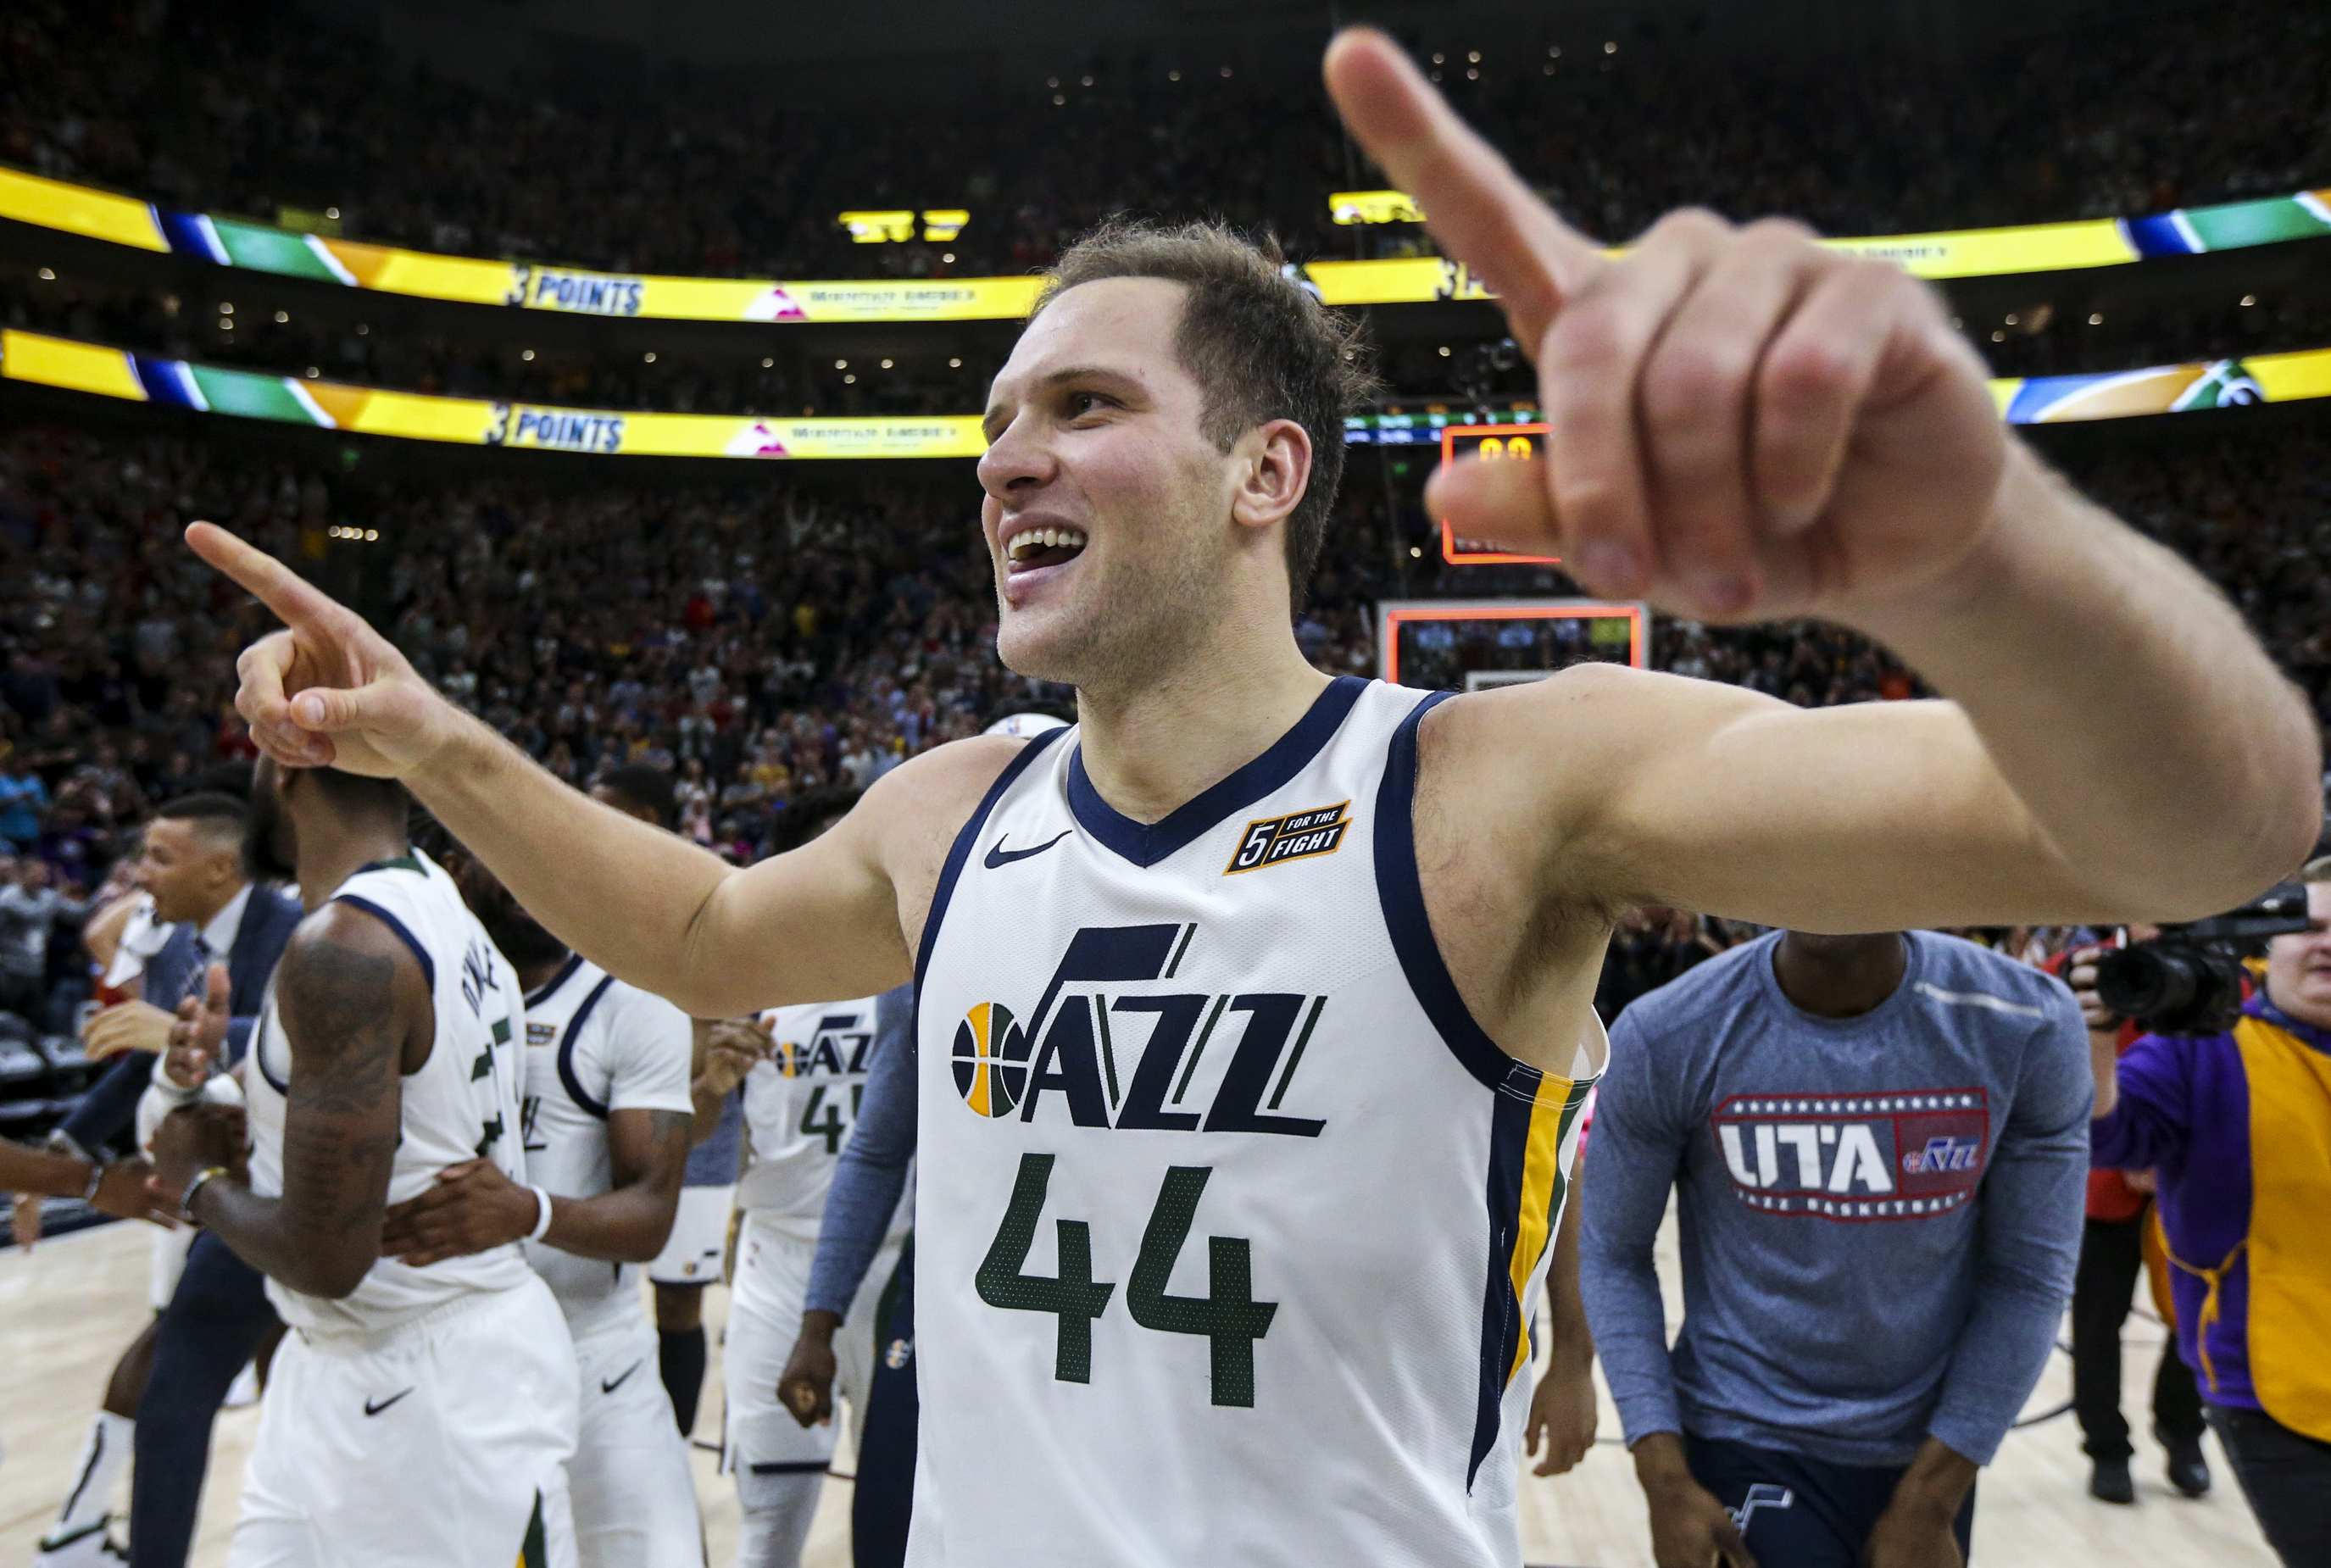 Utah Jazz forward Bojan Bogdanovic (44) and the rest of the team celebrate after Bogdanovic scored the game-winning basket in the final second of regulation play in the second half of an NBA basketball game at Vivint Arena in Salt Lake City on Friday, Nov. 8, 2019.